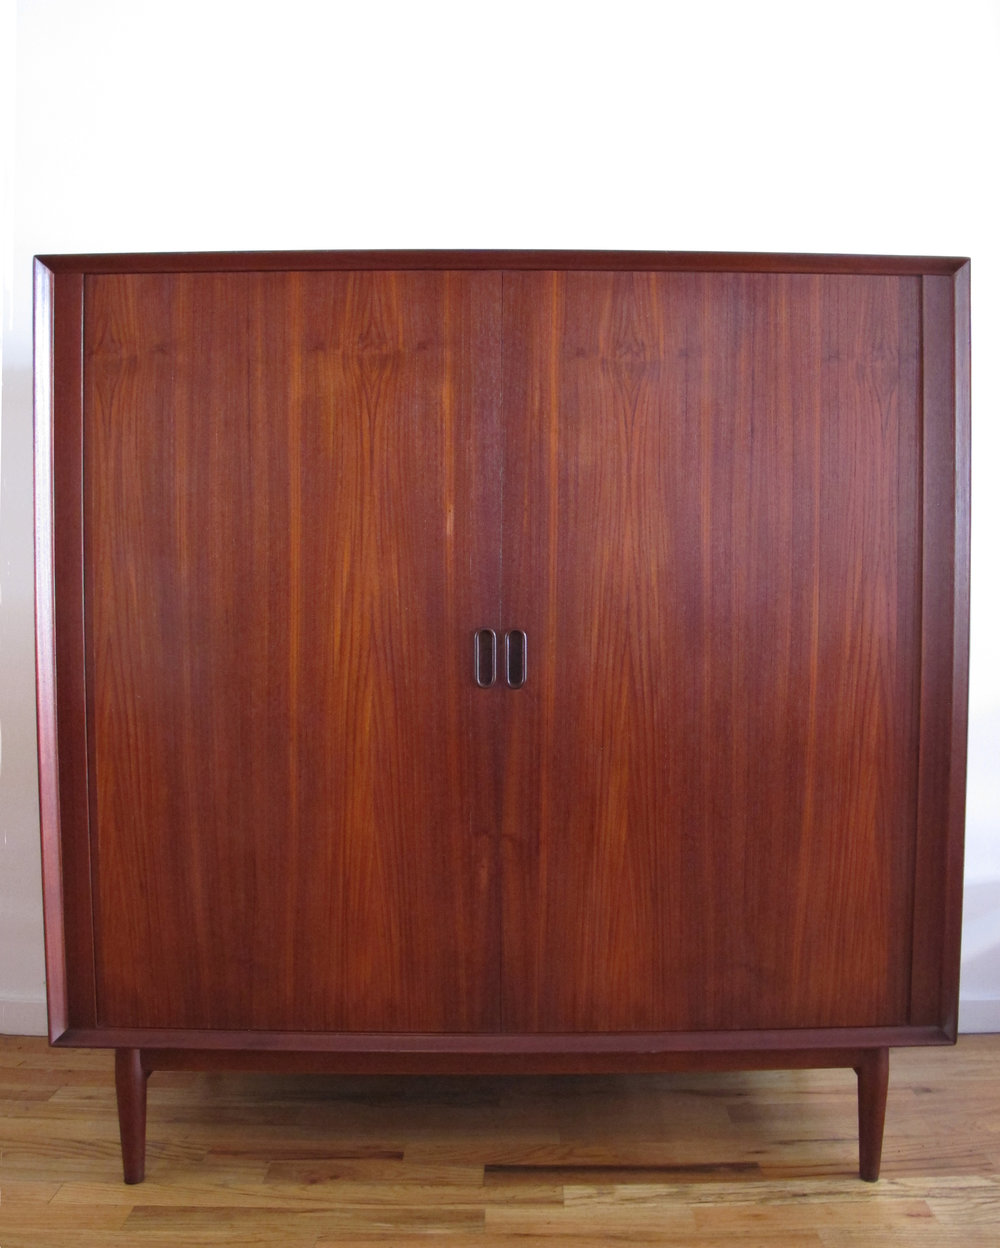 DANISH MODERN TEAK GENTLEMAN'S CHEST BY ARNE VODDER FOR SIBAST